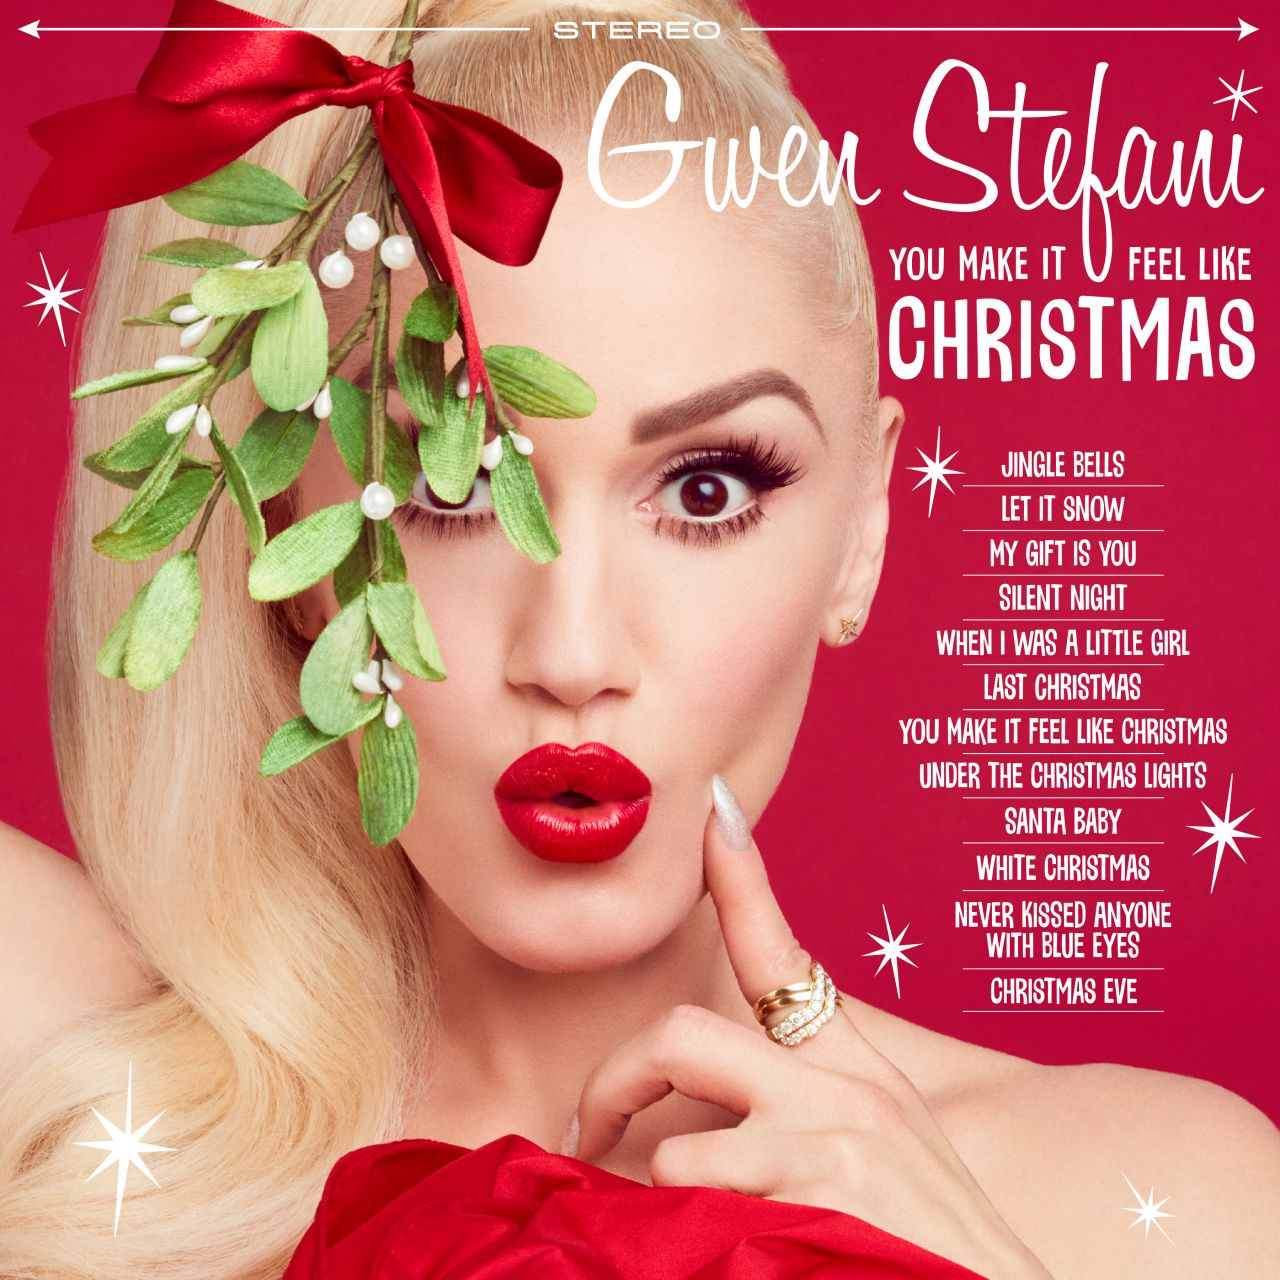 http://celebmafia.com/wp-content/uploads/2017/12/gwen-stefani-you-make-it-feel-like-christmas-photoshoot-6.jpg